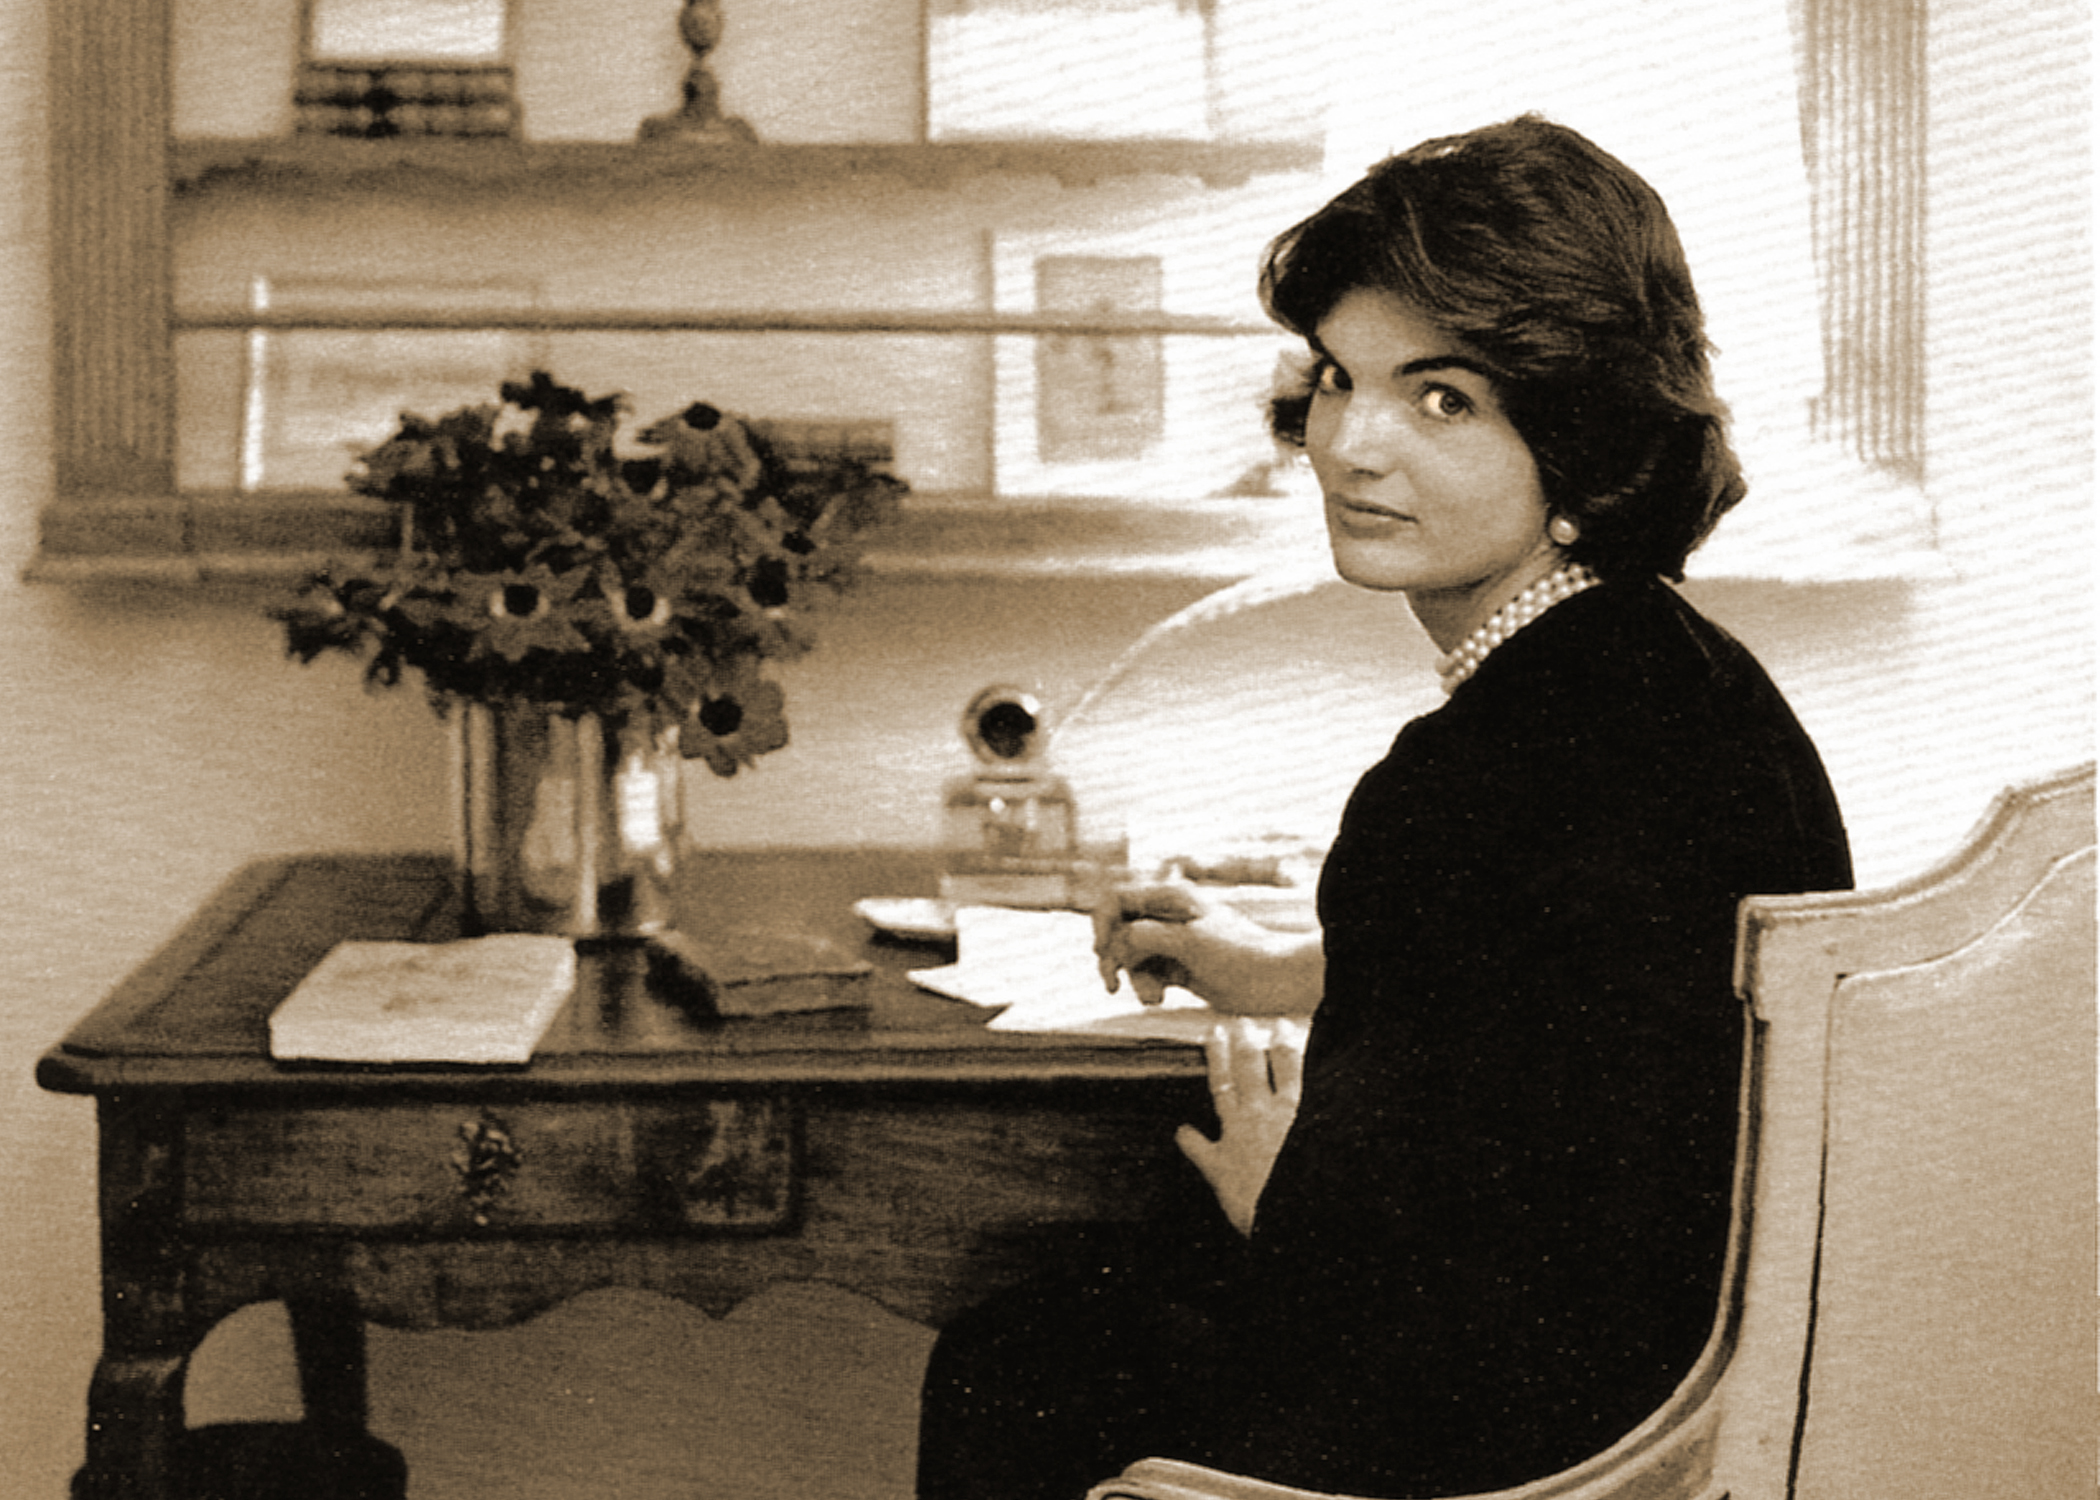 Jacqueline Kennedy at her desk in the White House